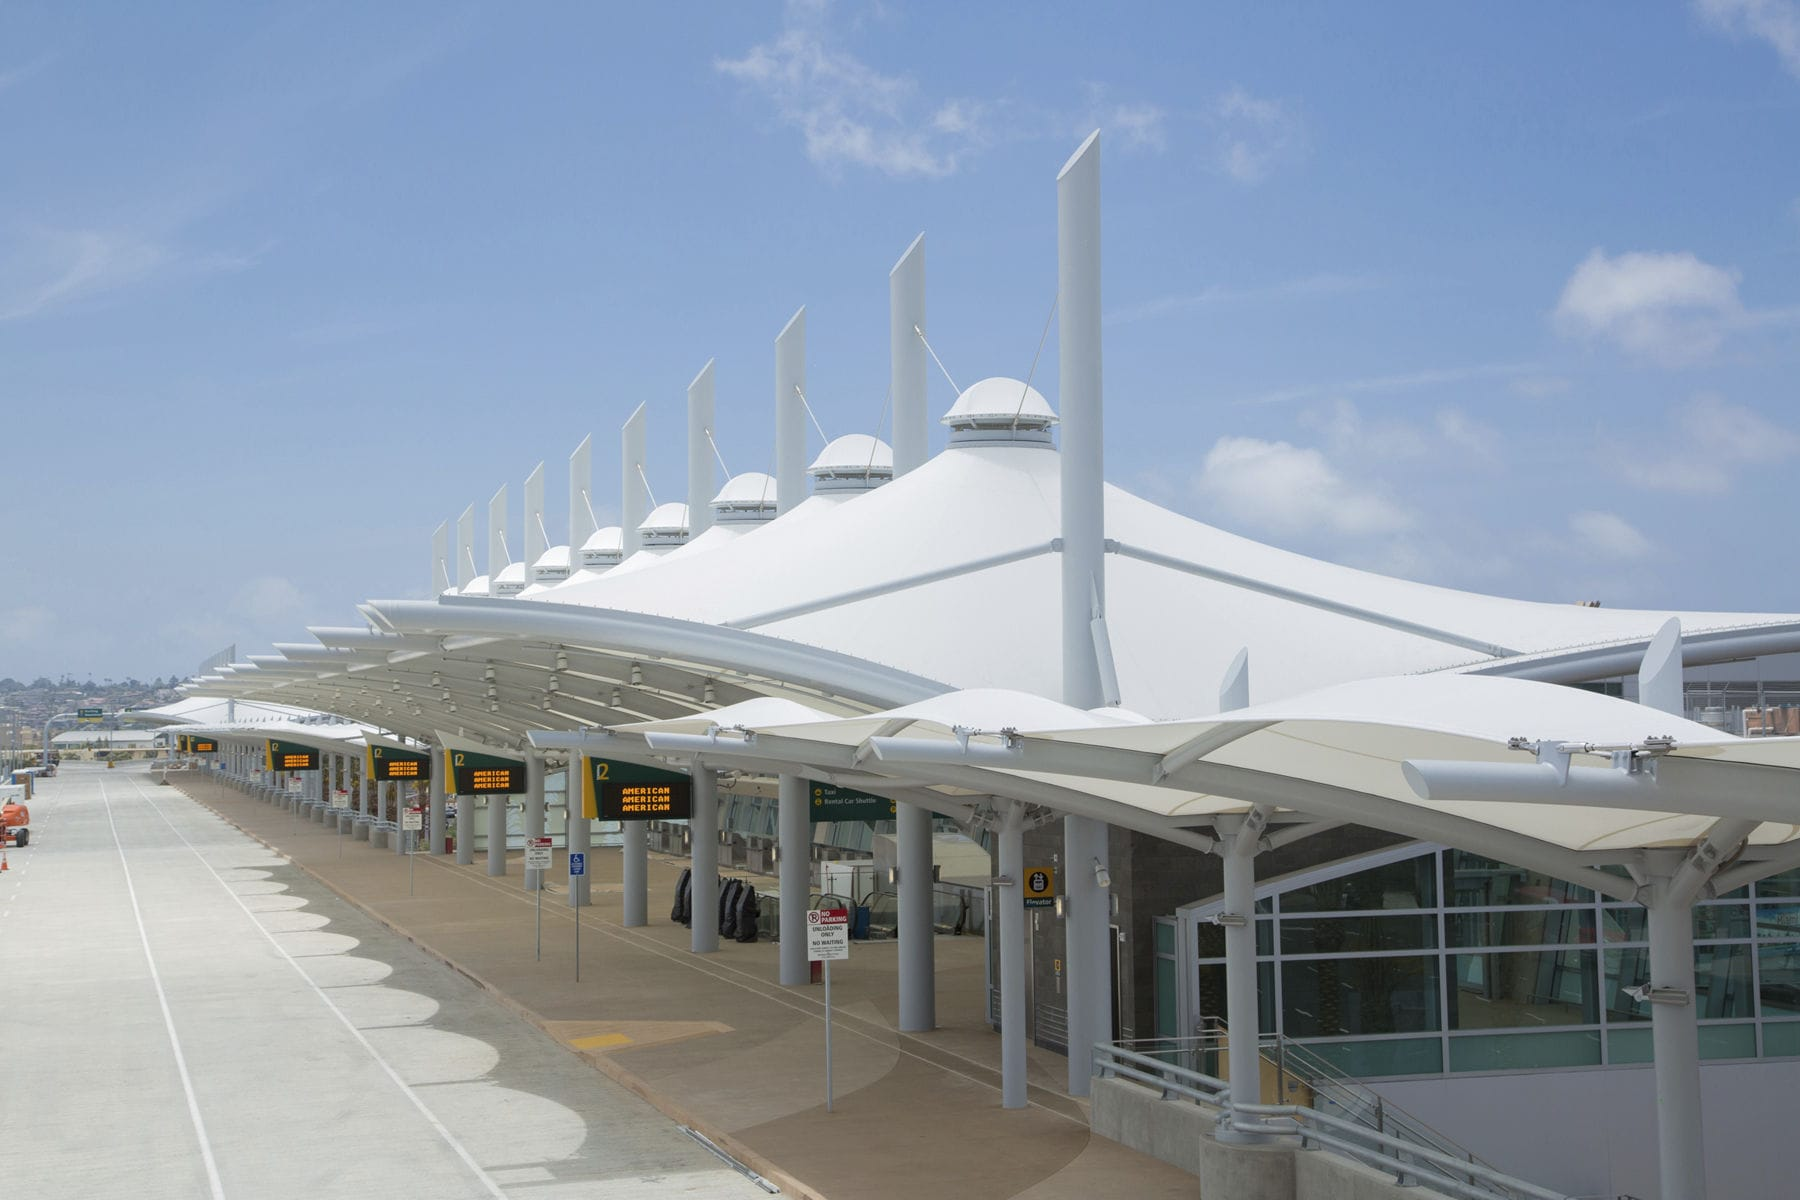 ... PTFE architectural membrane / for tensile structures / for public spaces / for entrance canopies SAN & PTFE architectural membrane / for tensile structures / for public ...